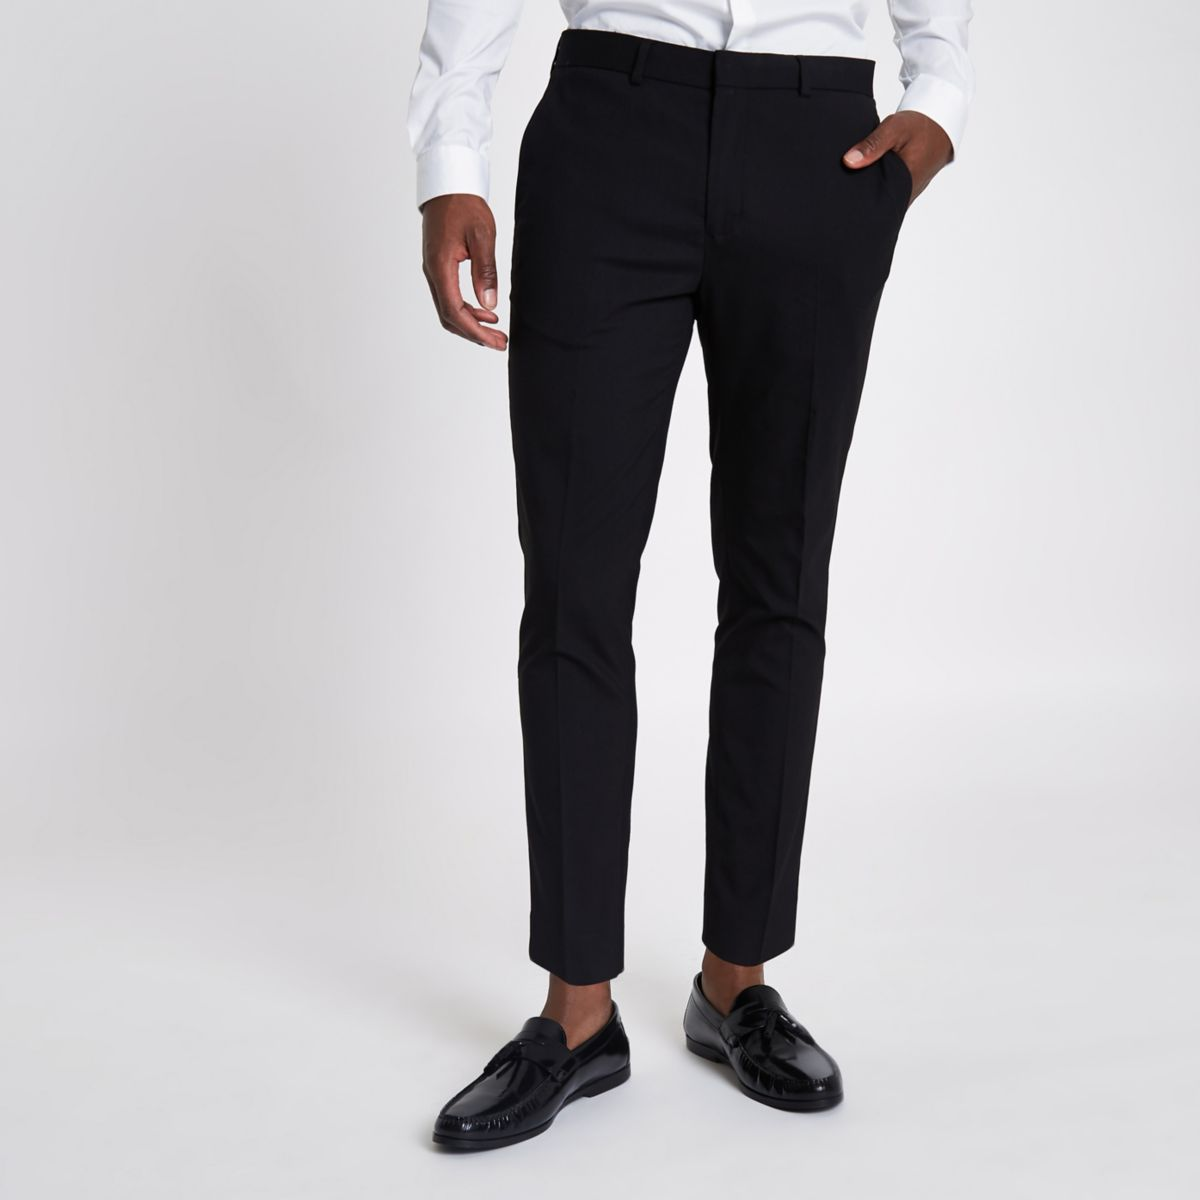 Find great deals on eBay for mens trousers. Shop with confidence.